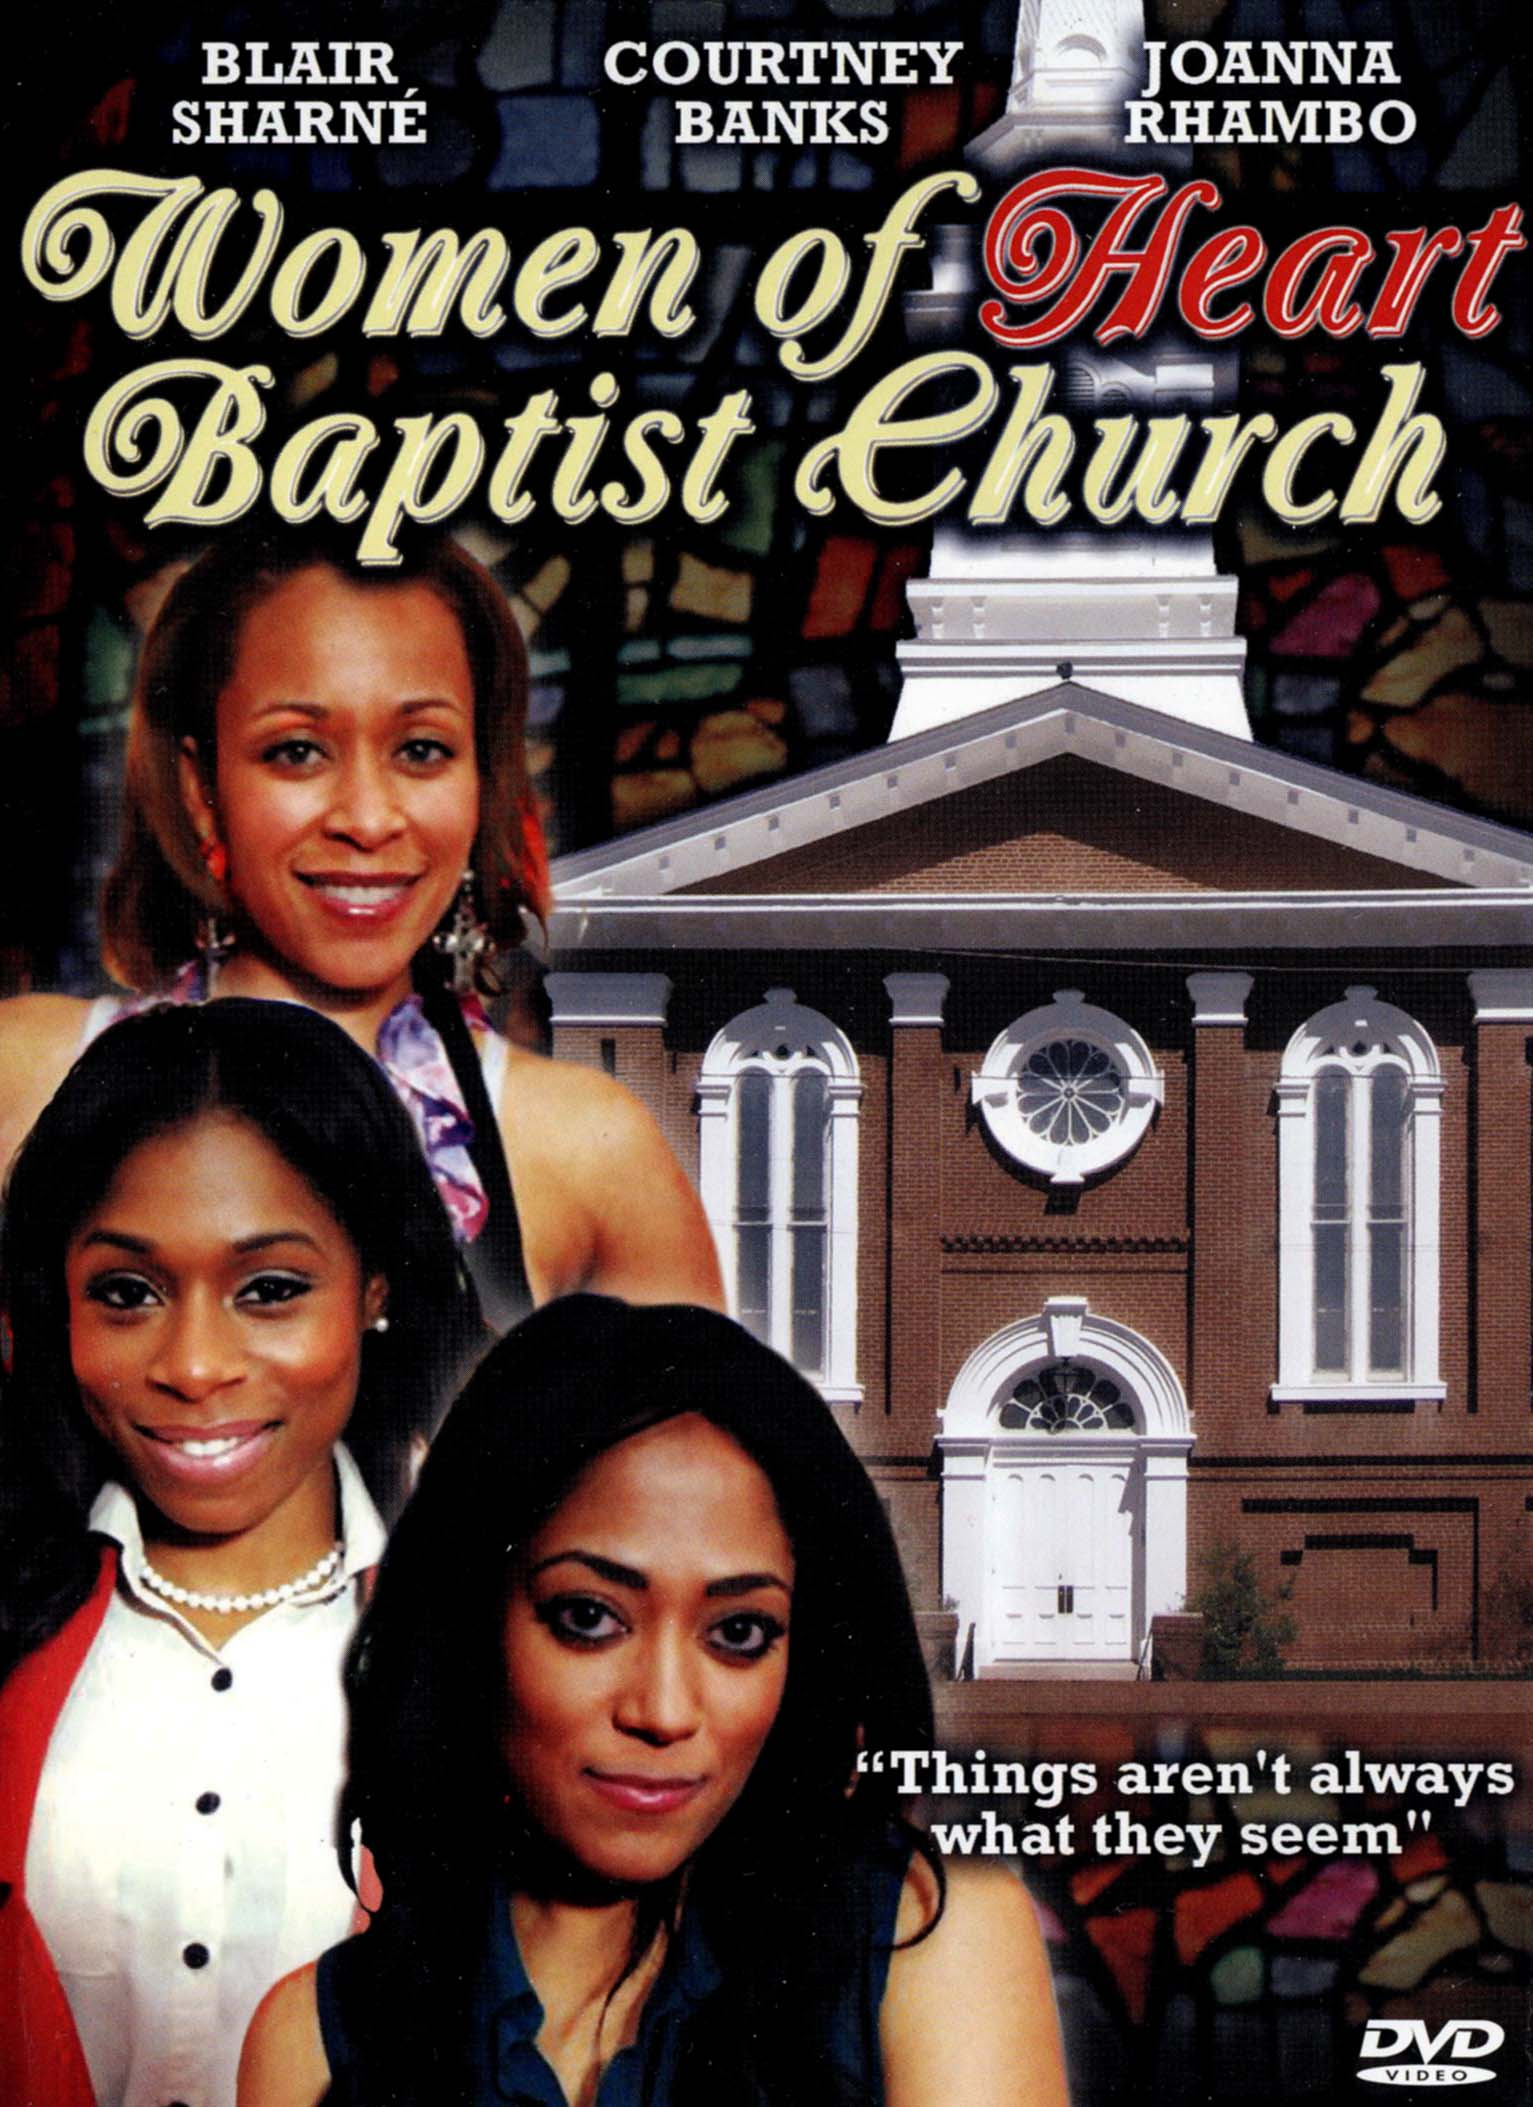 The Women of Heart Baptist Church